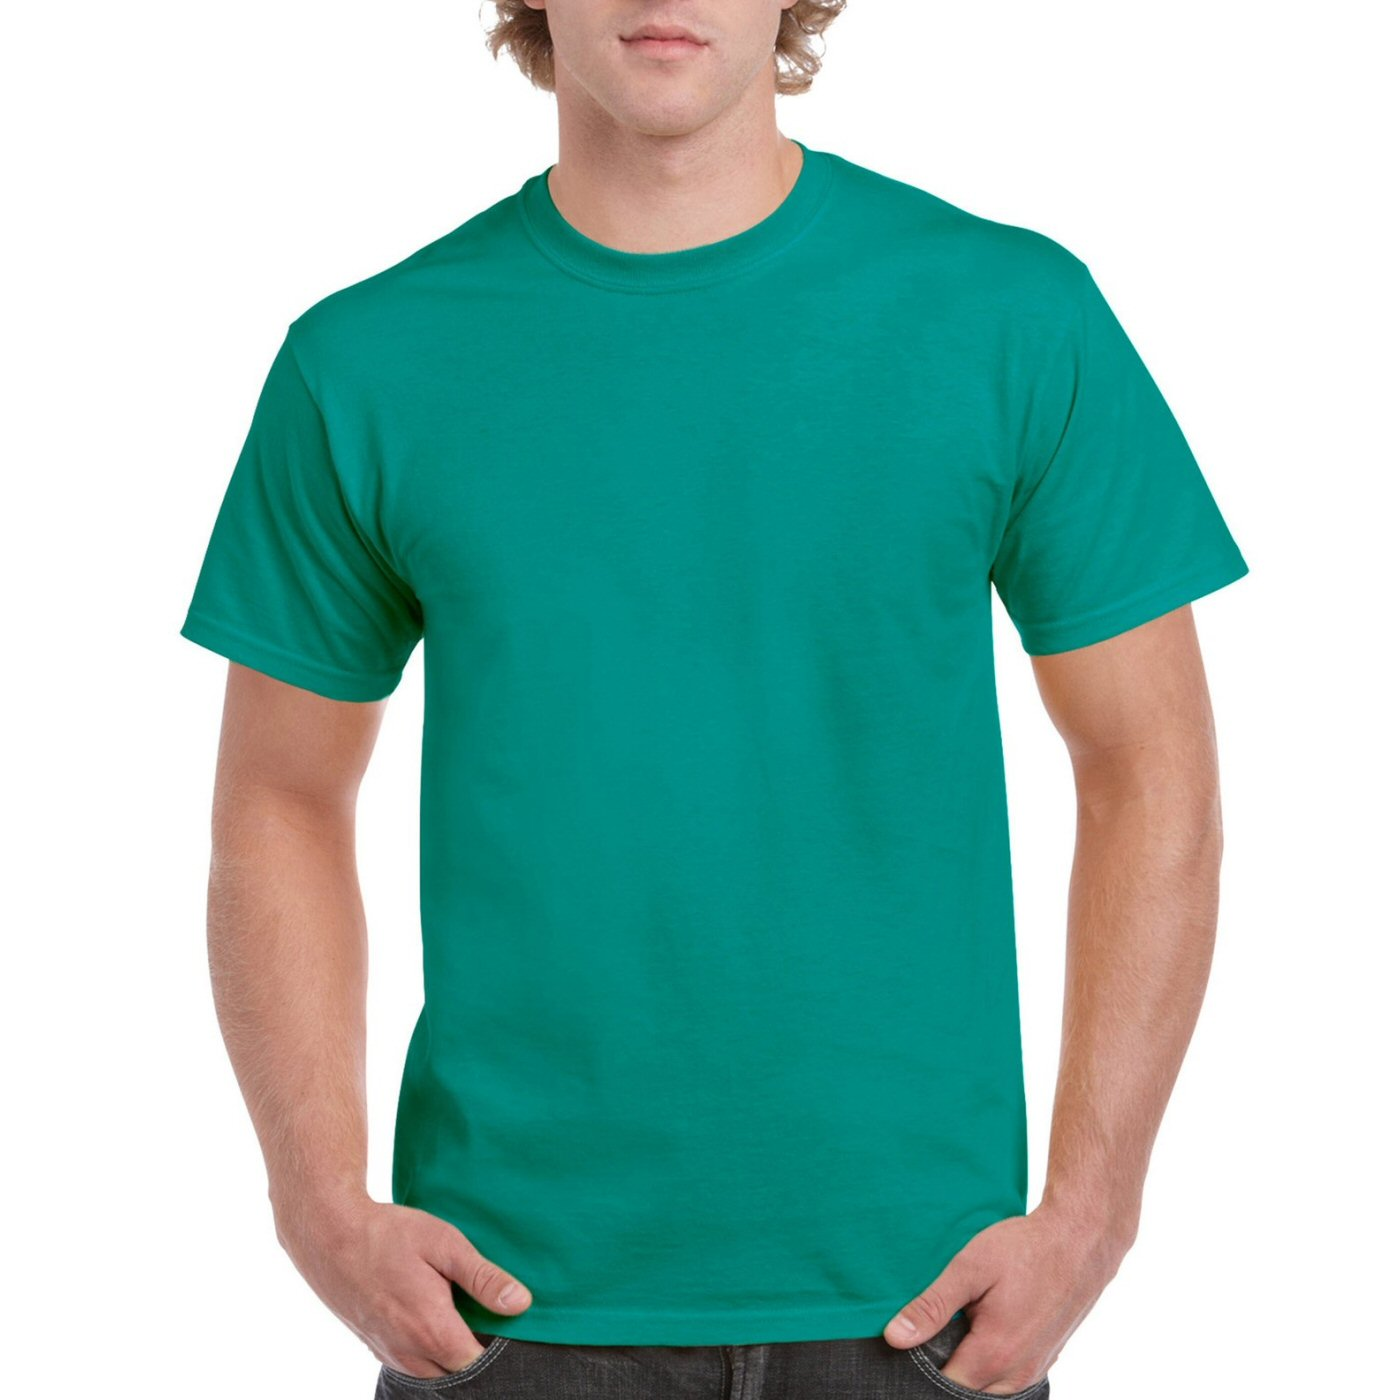 Rama Green Plain Round Neck T-shirt image